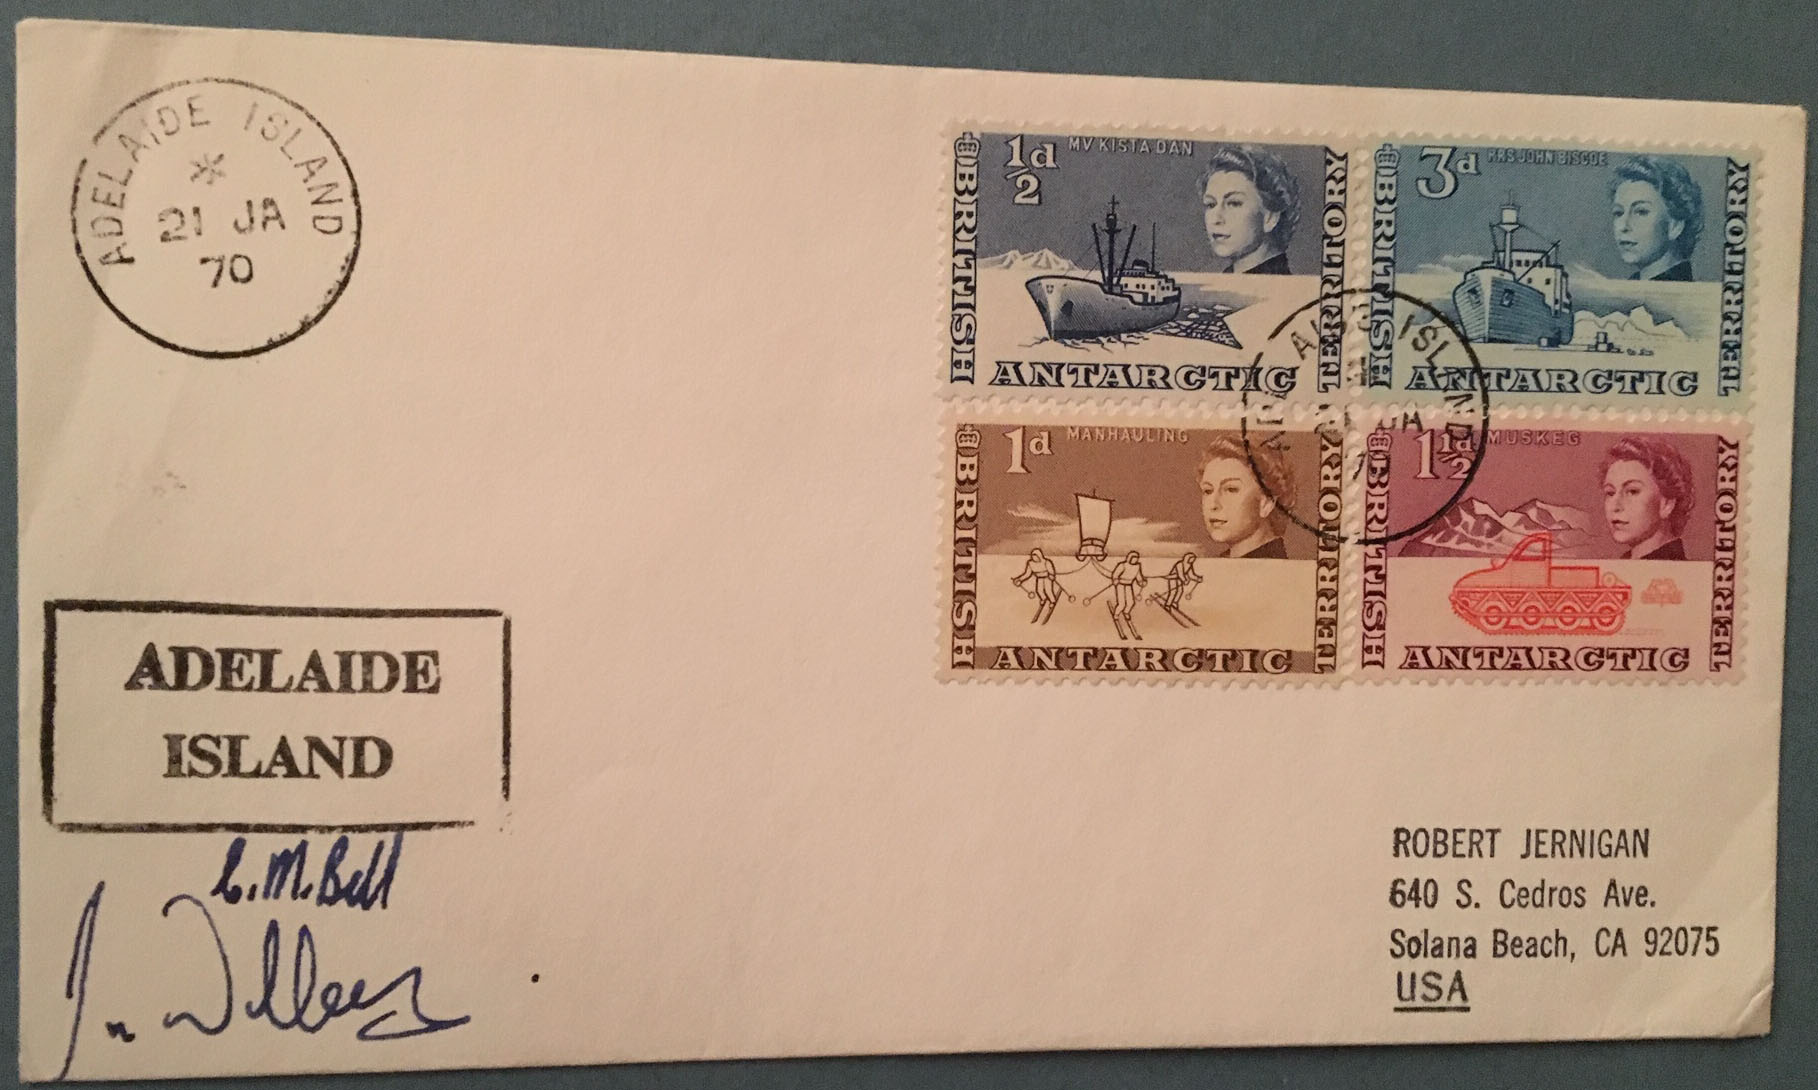 BAT 1970 ADELAIDE ISLAND SIGNED cover